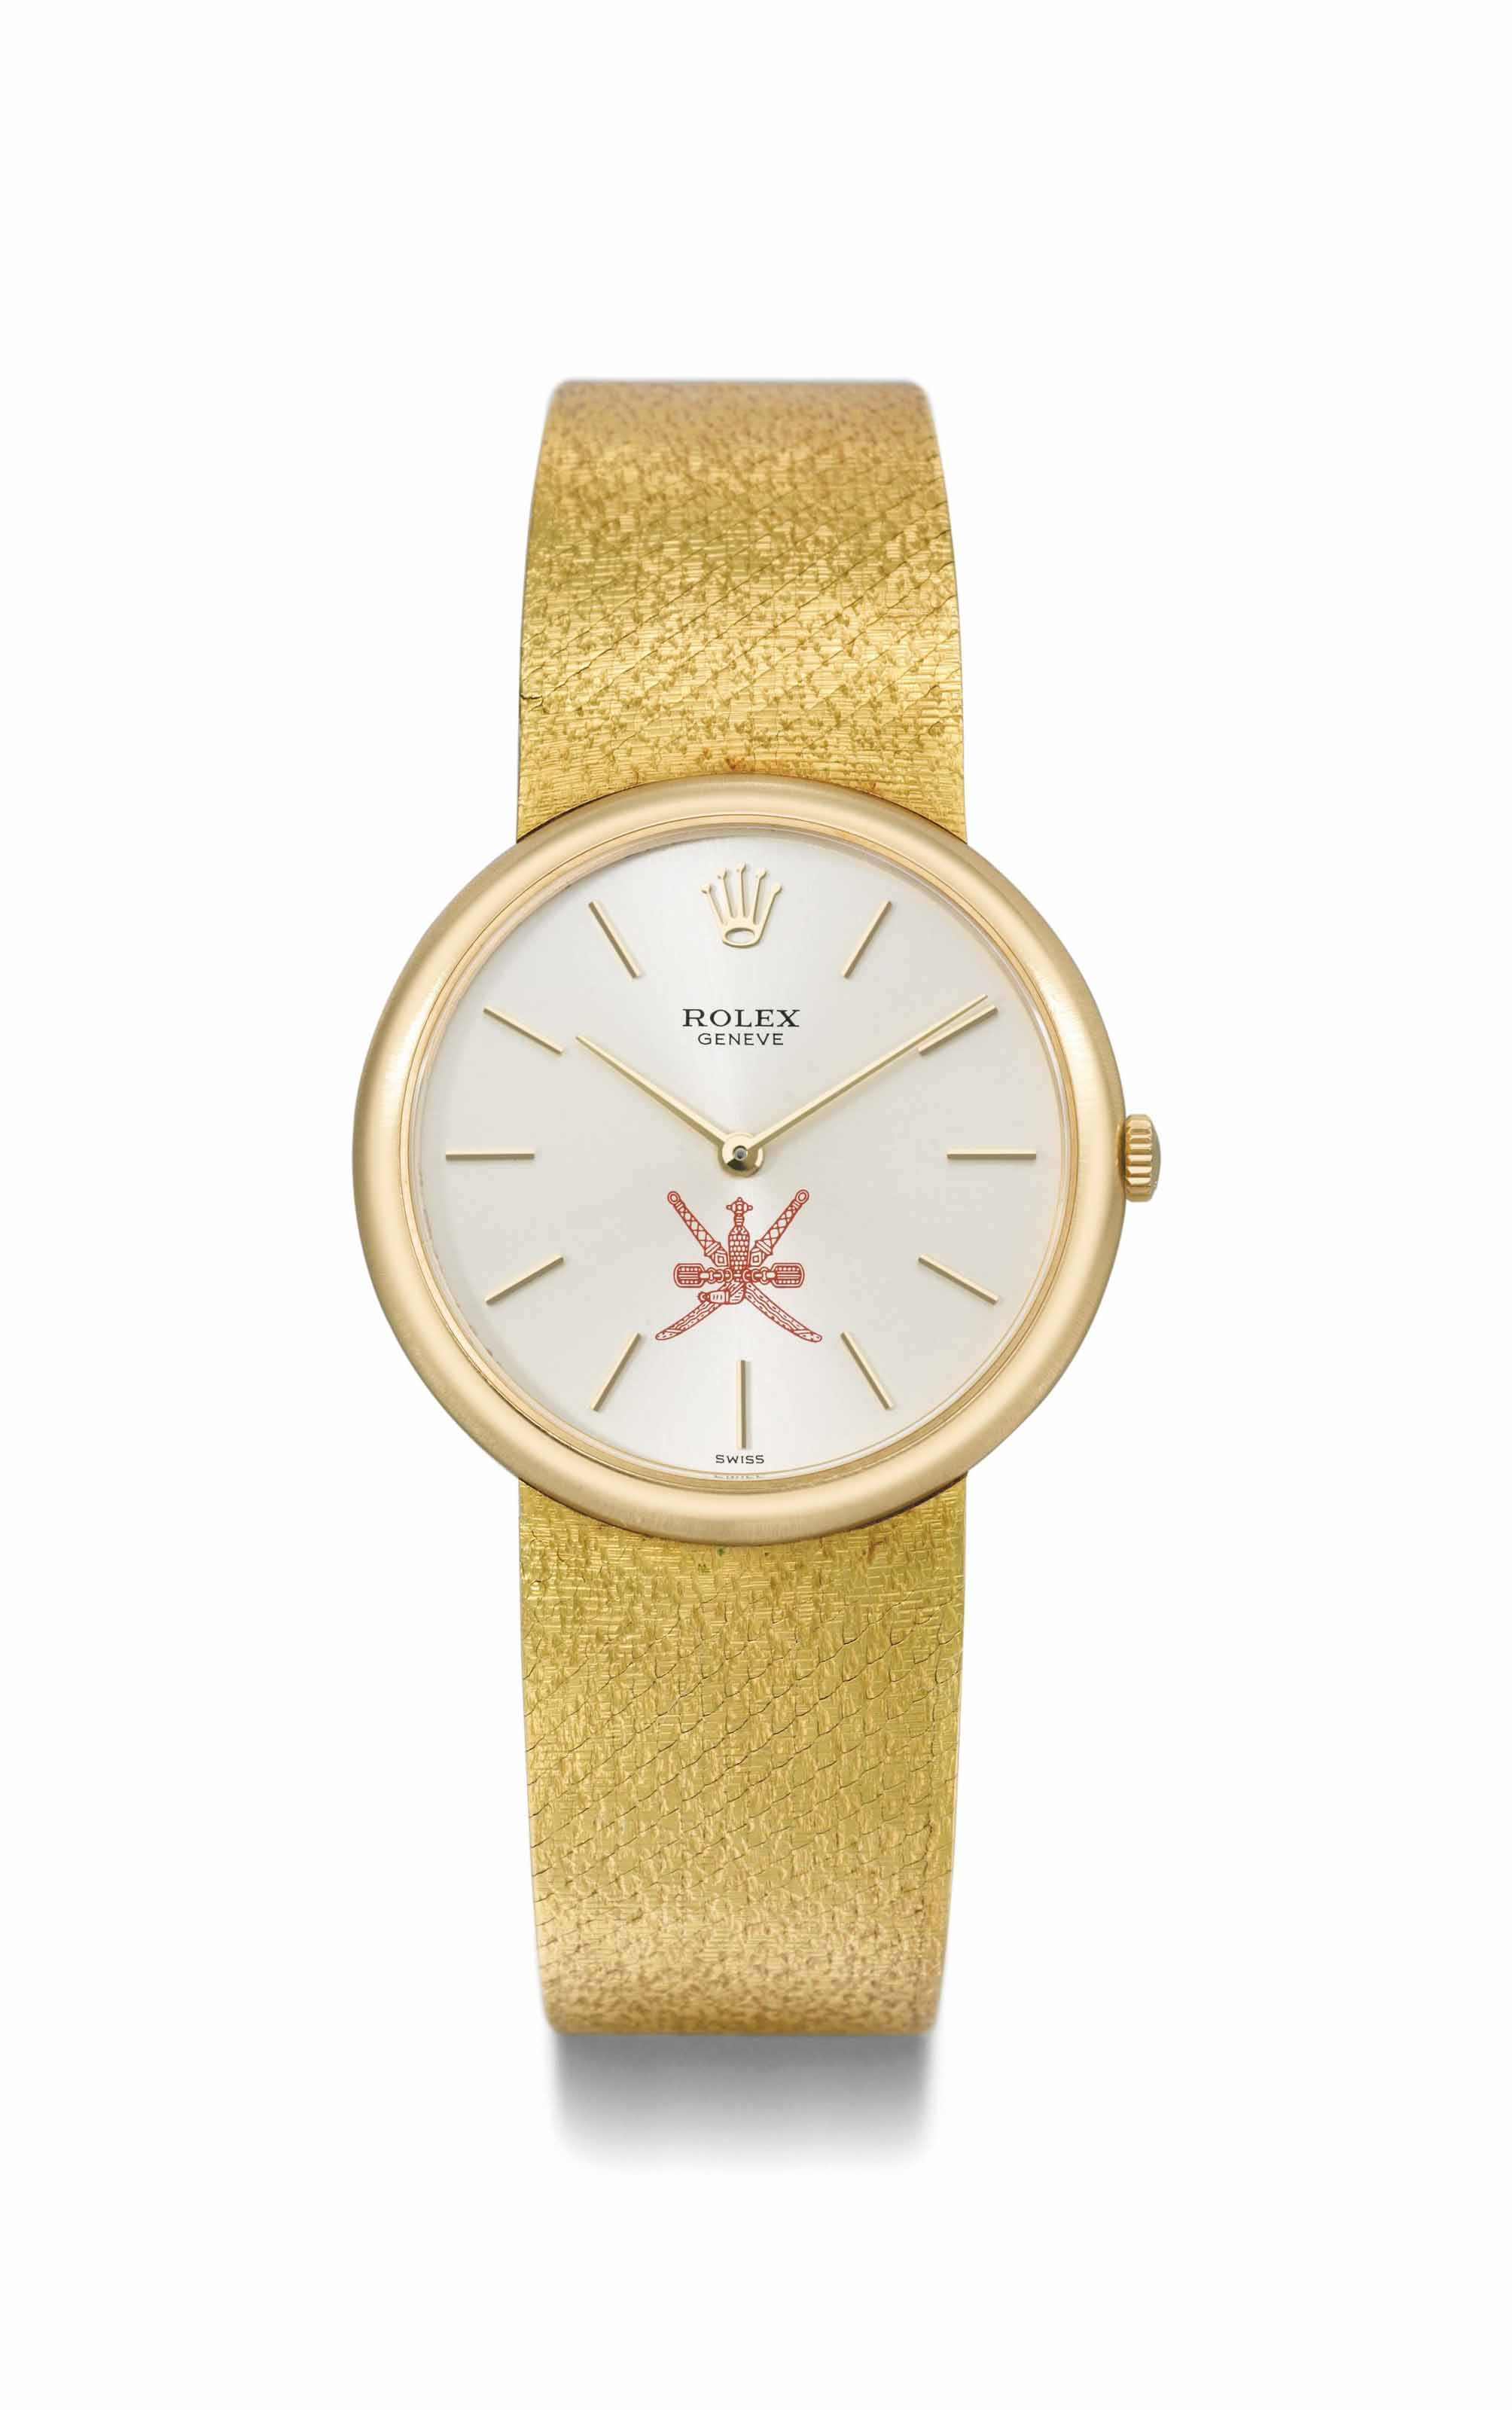 Rolex. An 18K gold bracelet watch made for the Sultanate of Oman